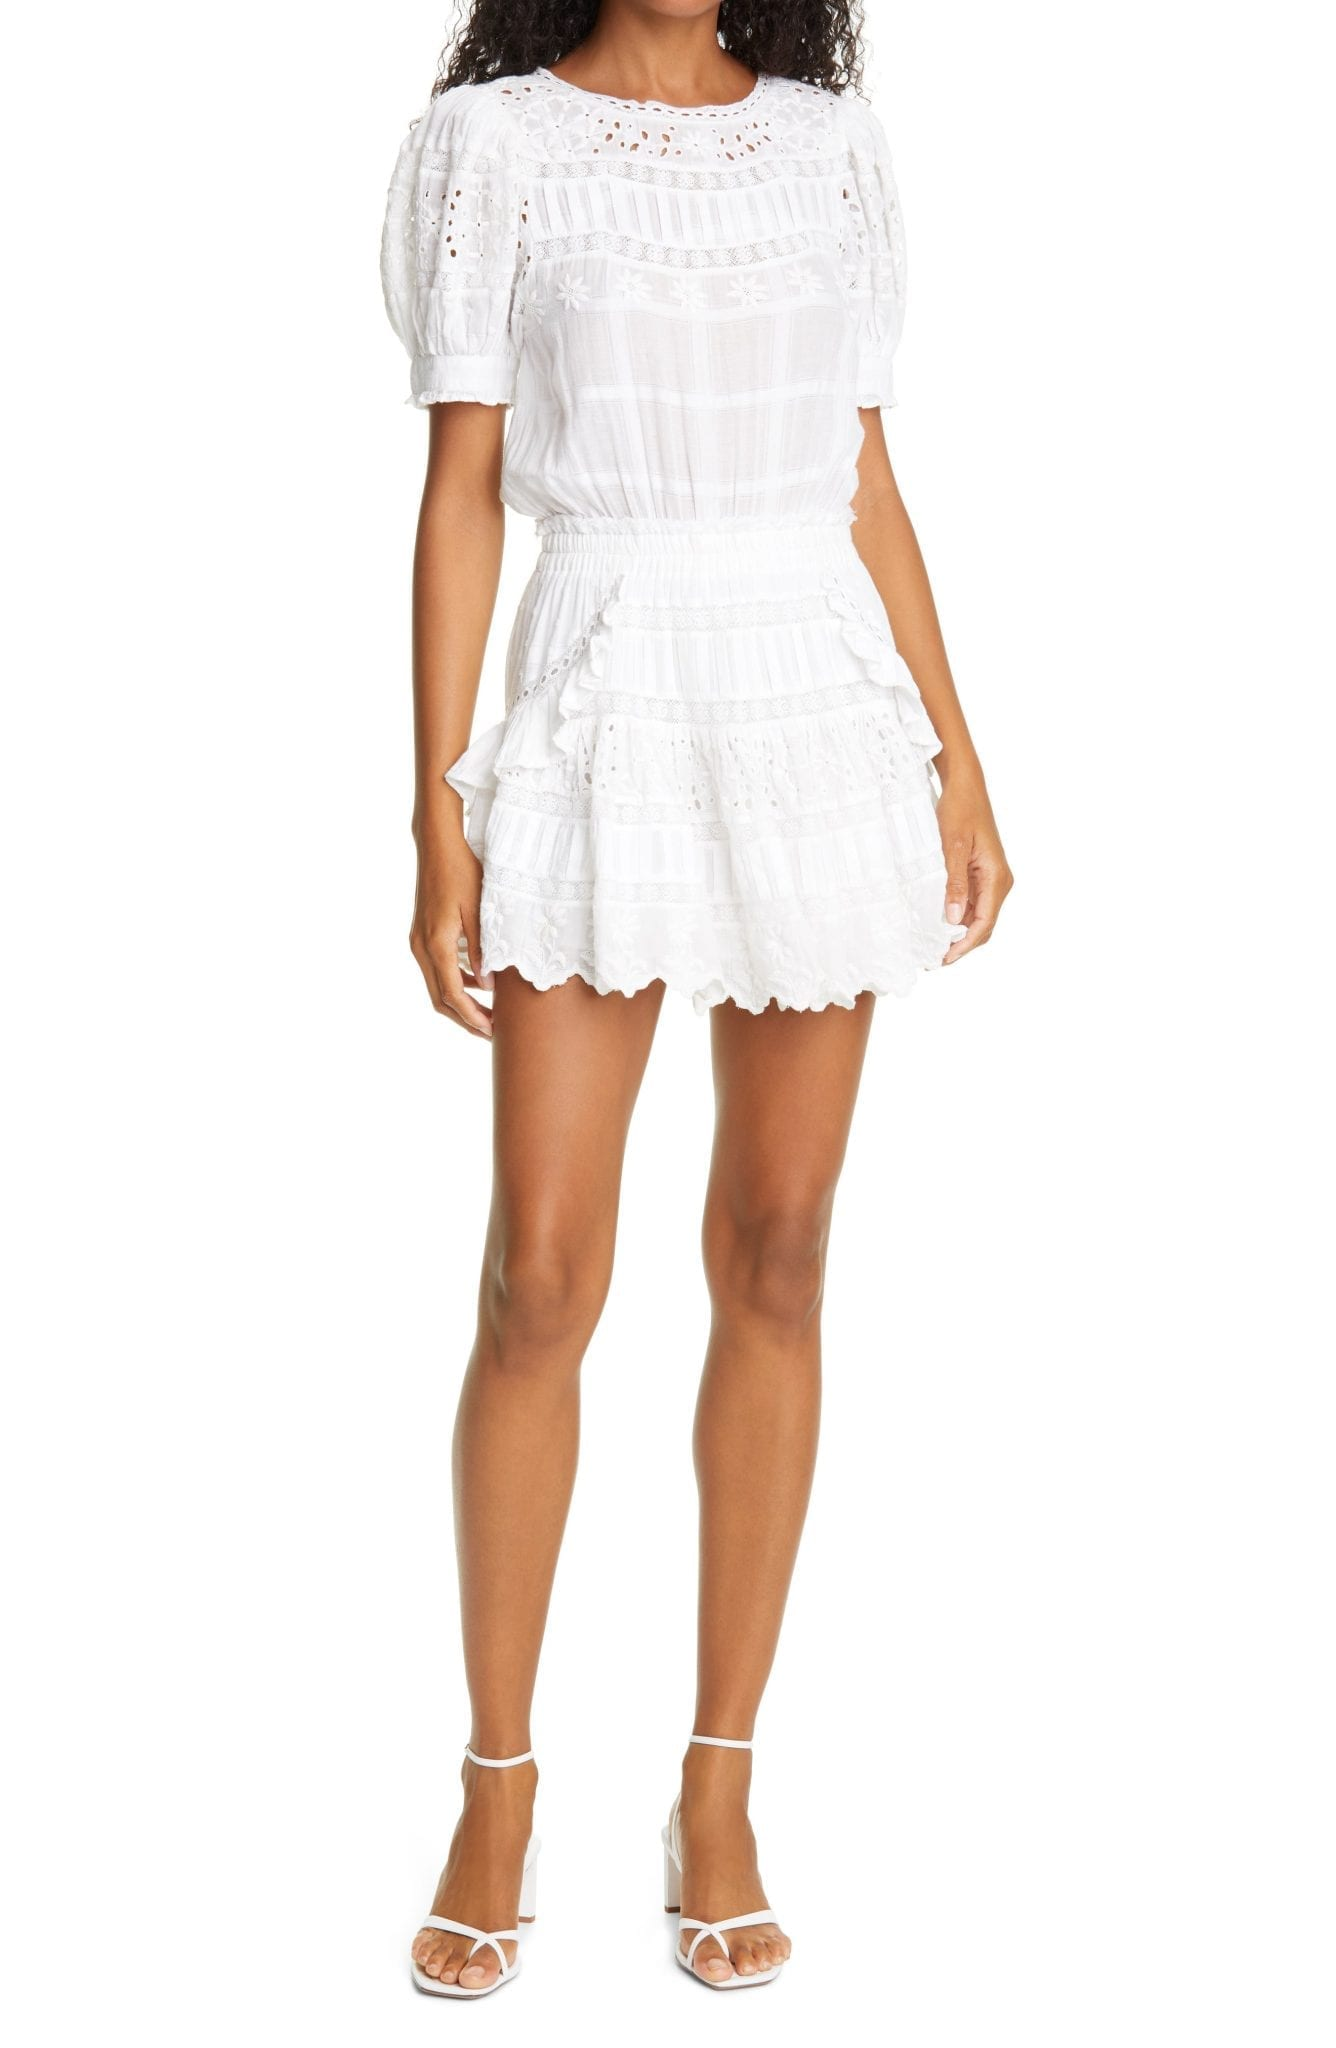 LOVESHACKFANCY Augustine Ruffle & Lace Mini Dress